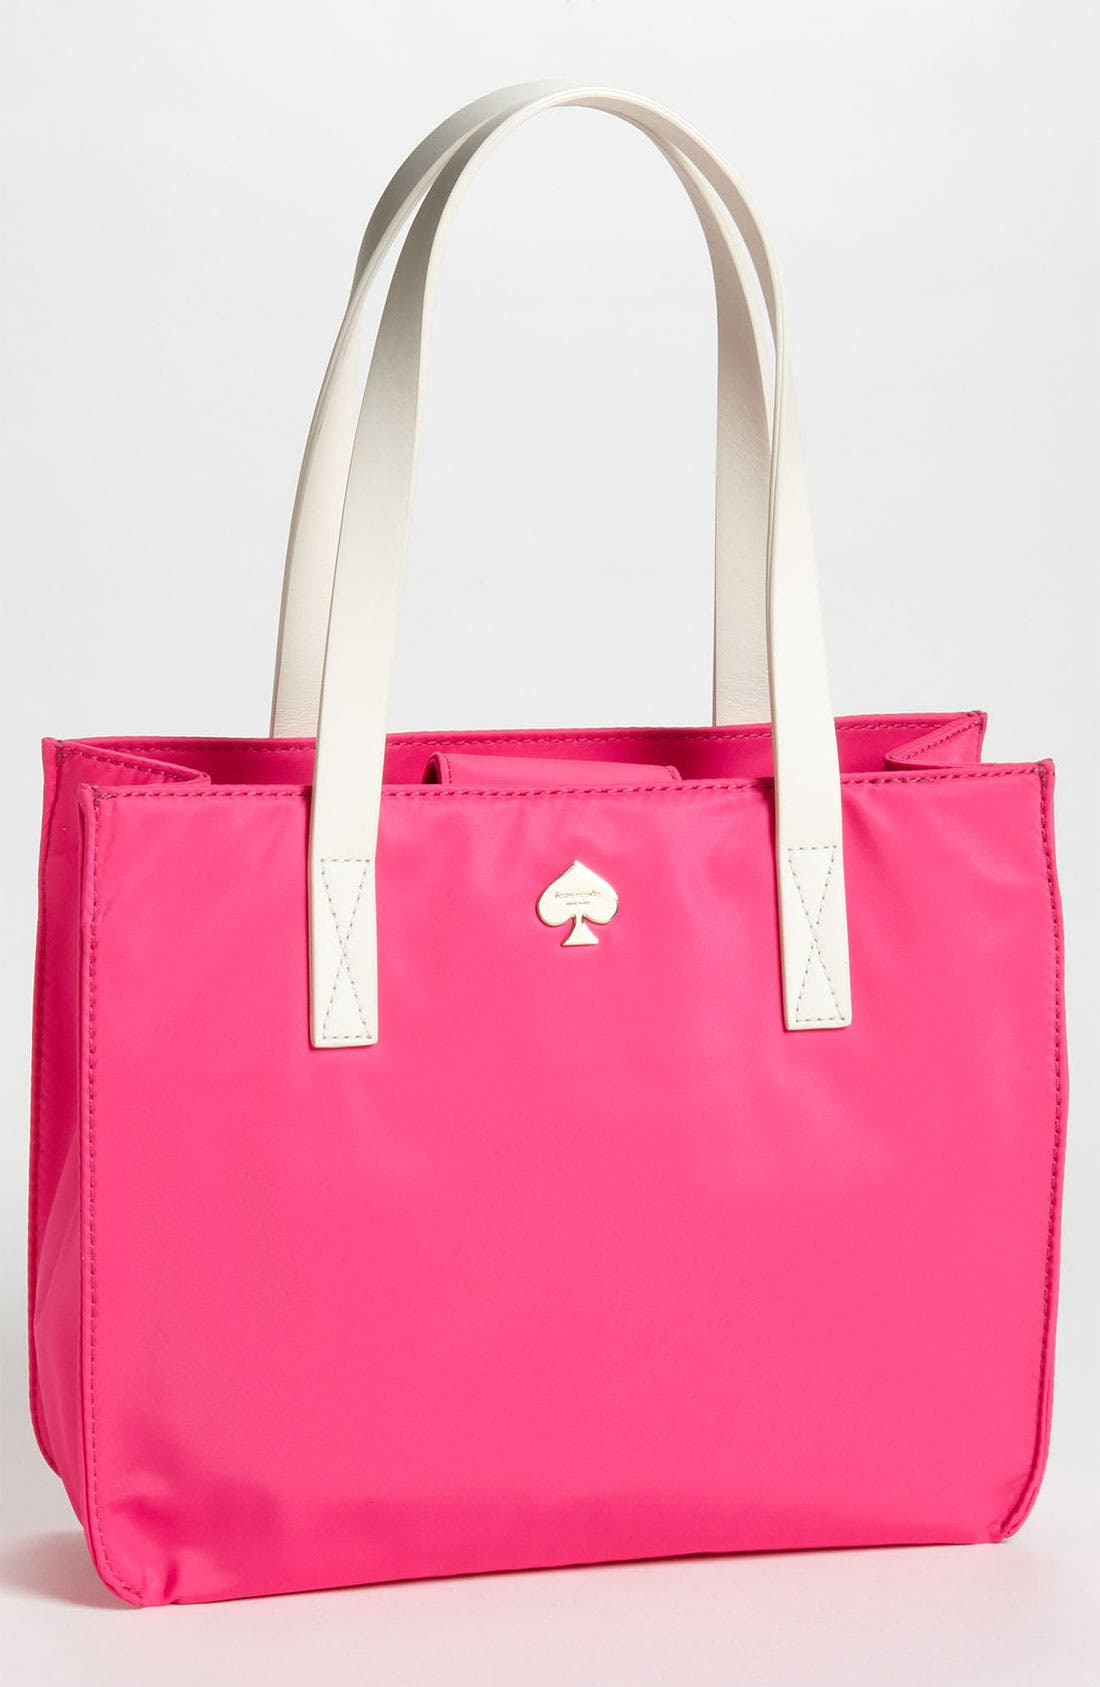 Alternate Image 1 Selected - kate spade new york 'berry street - elise' tote